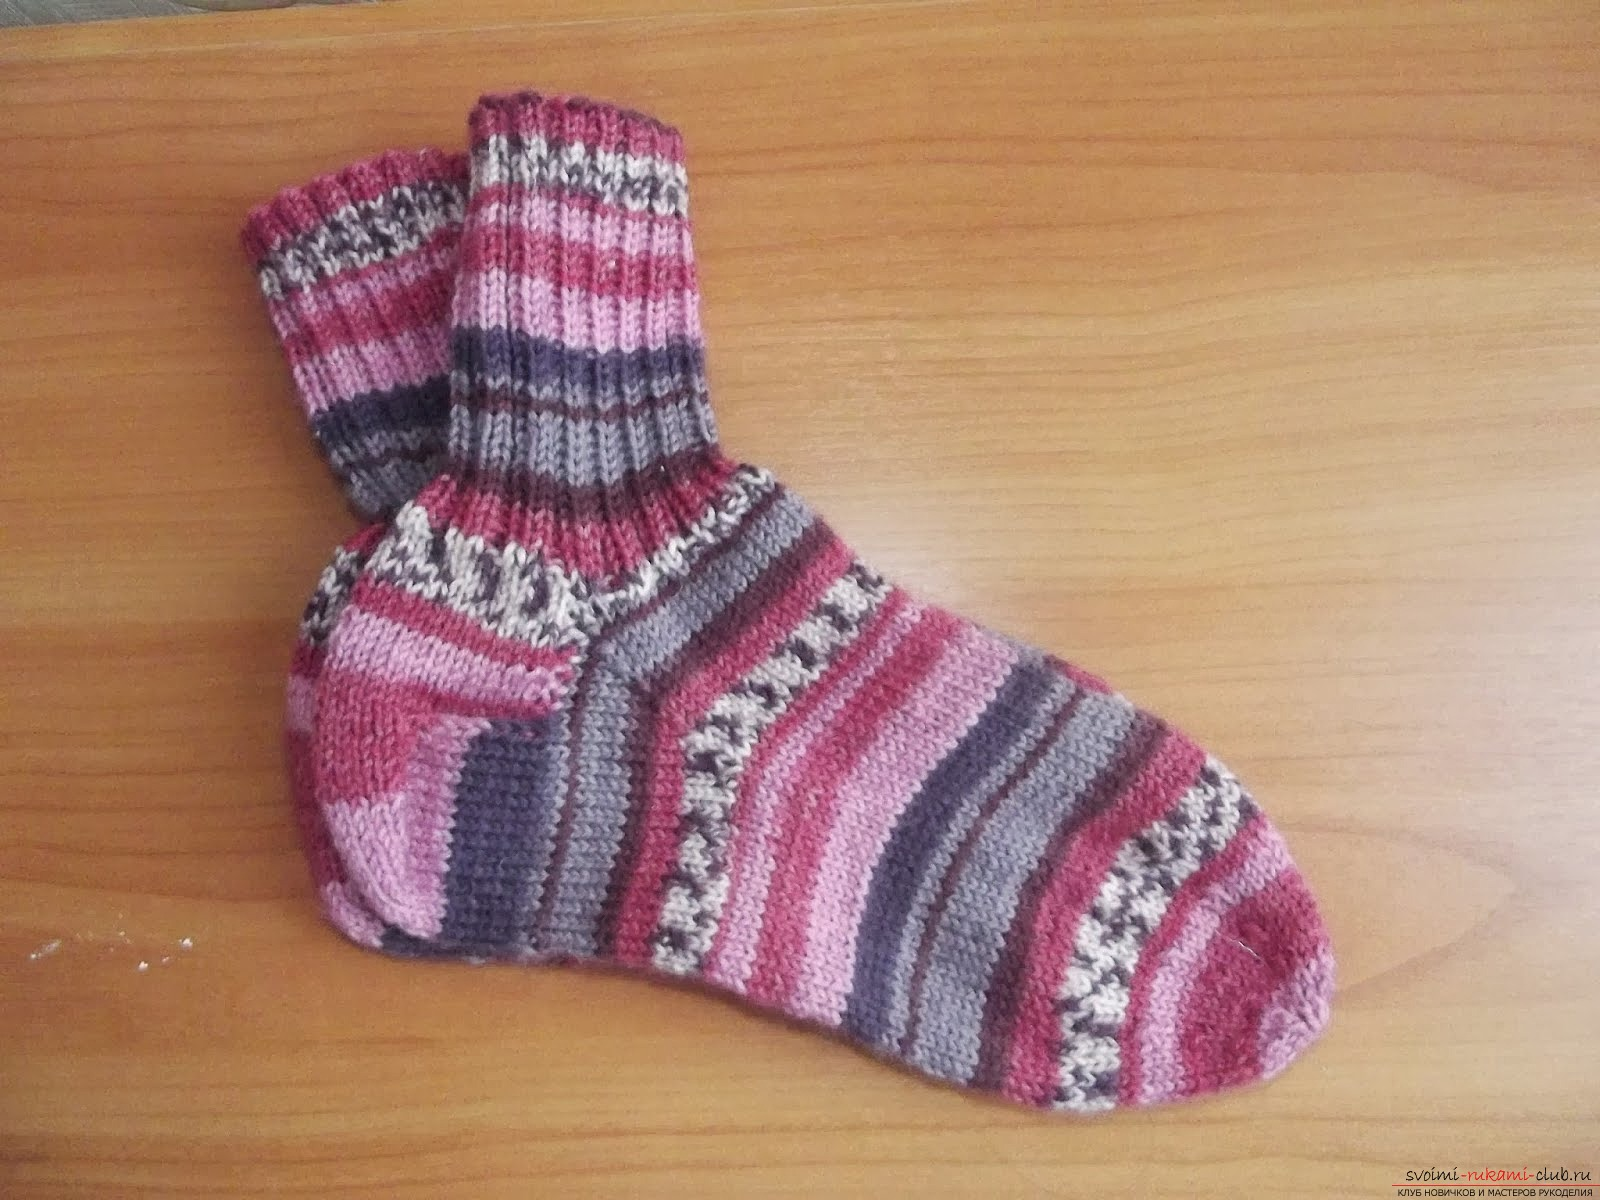 toe-asterisk of a knitted sock. Photo №4